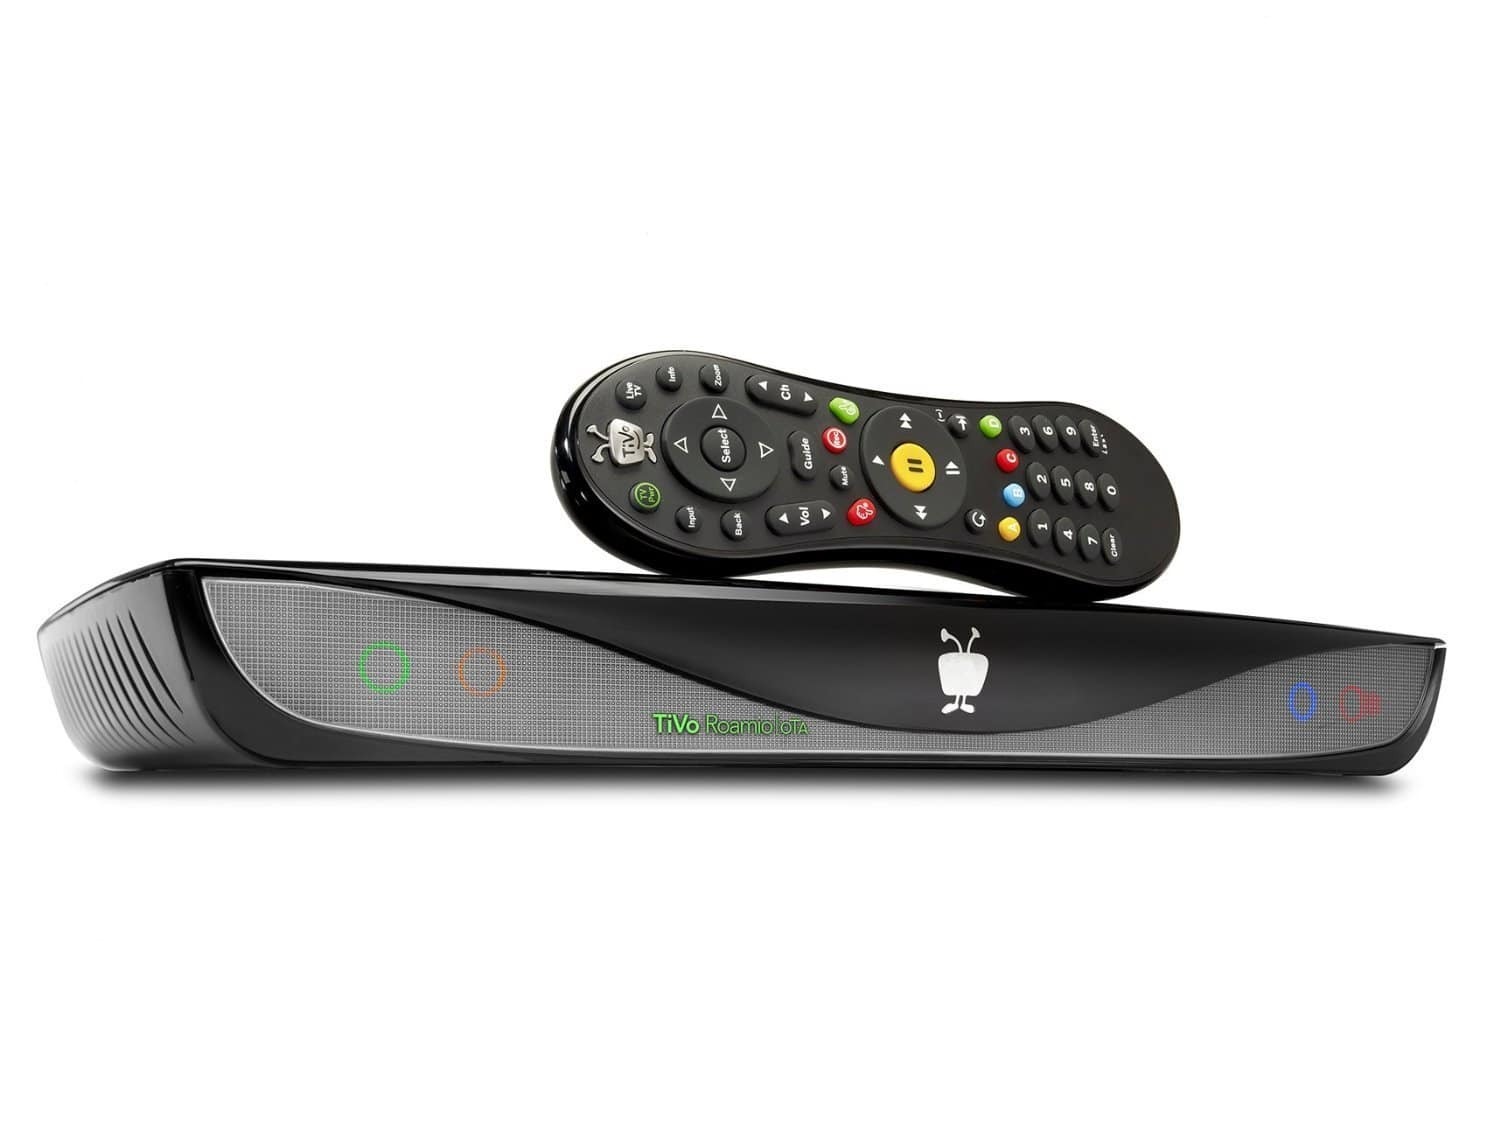 Tivo OTA $29.99; Tivo Mini Ir $69.99 and Mini 2 RF $89.99 is back Refurbished via amazon